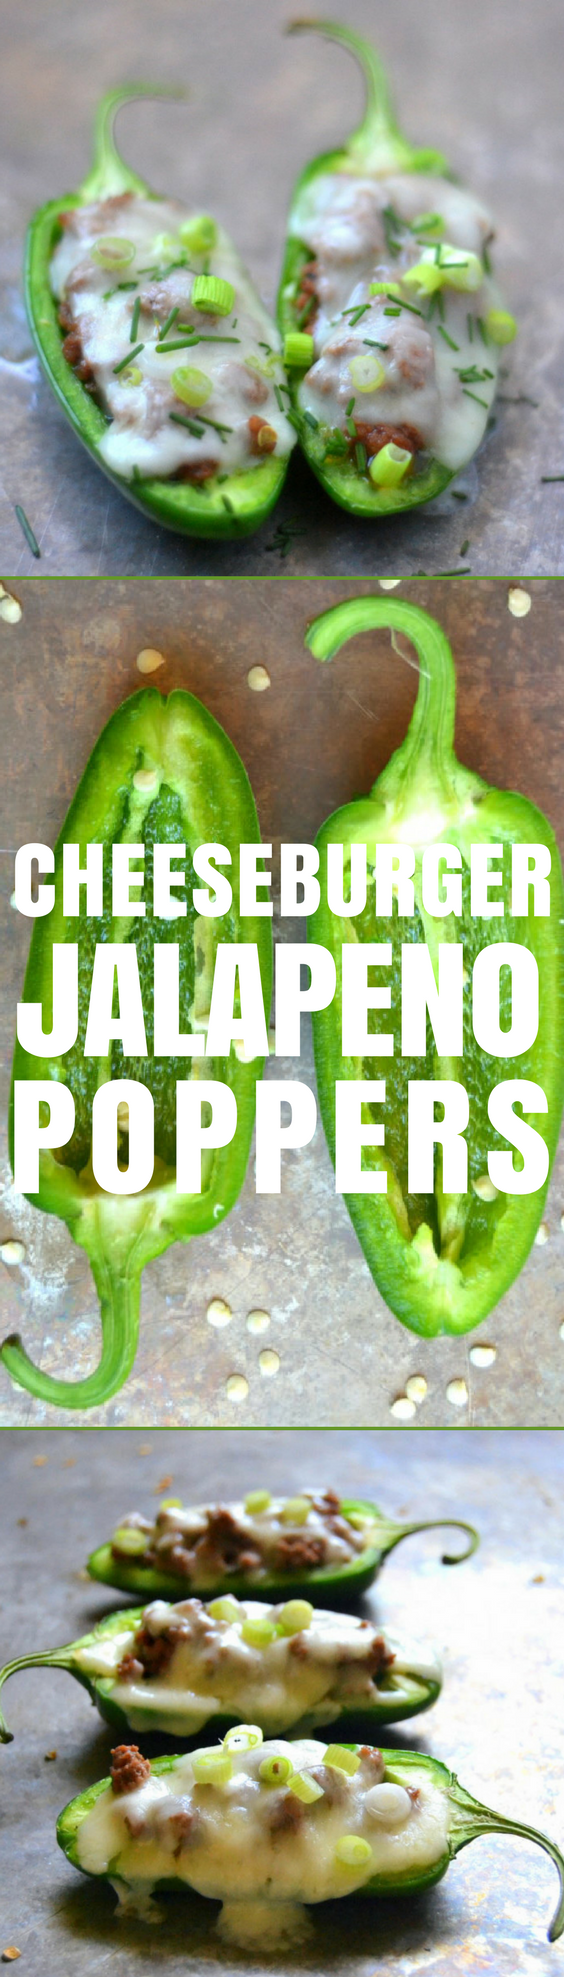 Cheeseburger Jalapeño Poppers are one of the most satisfying appetizers on the planet! These healthier baked jalapeño poppers are stuffed with seasoned ground beef, topped with plenty of melty cheese. #appetizers #gameday #tailgating #gamenight #healthyappetizer #easyappetizers